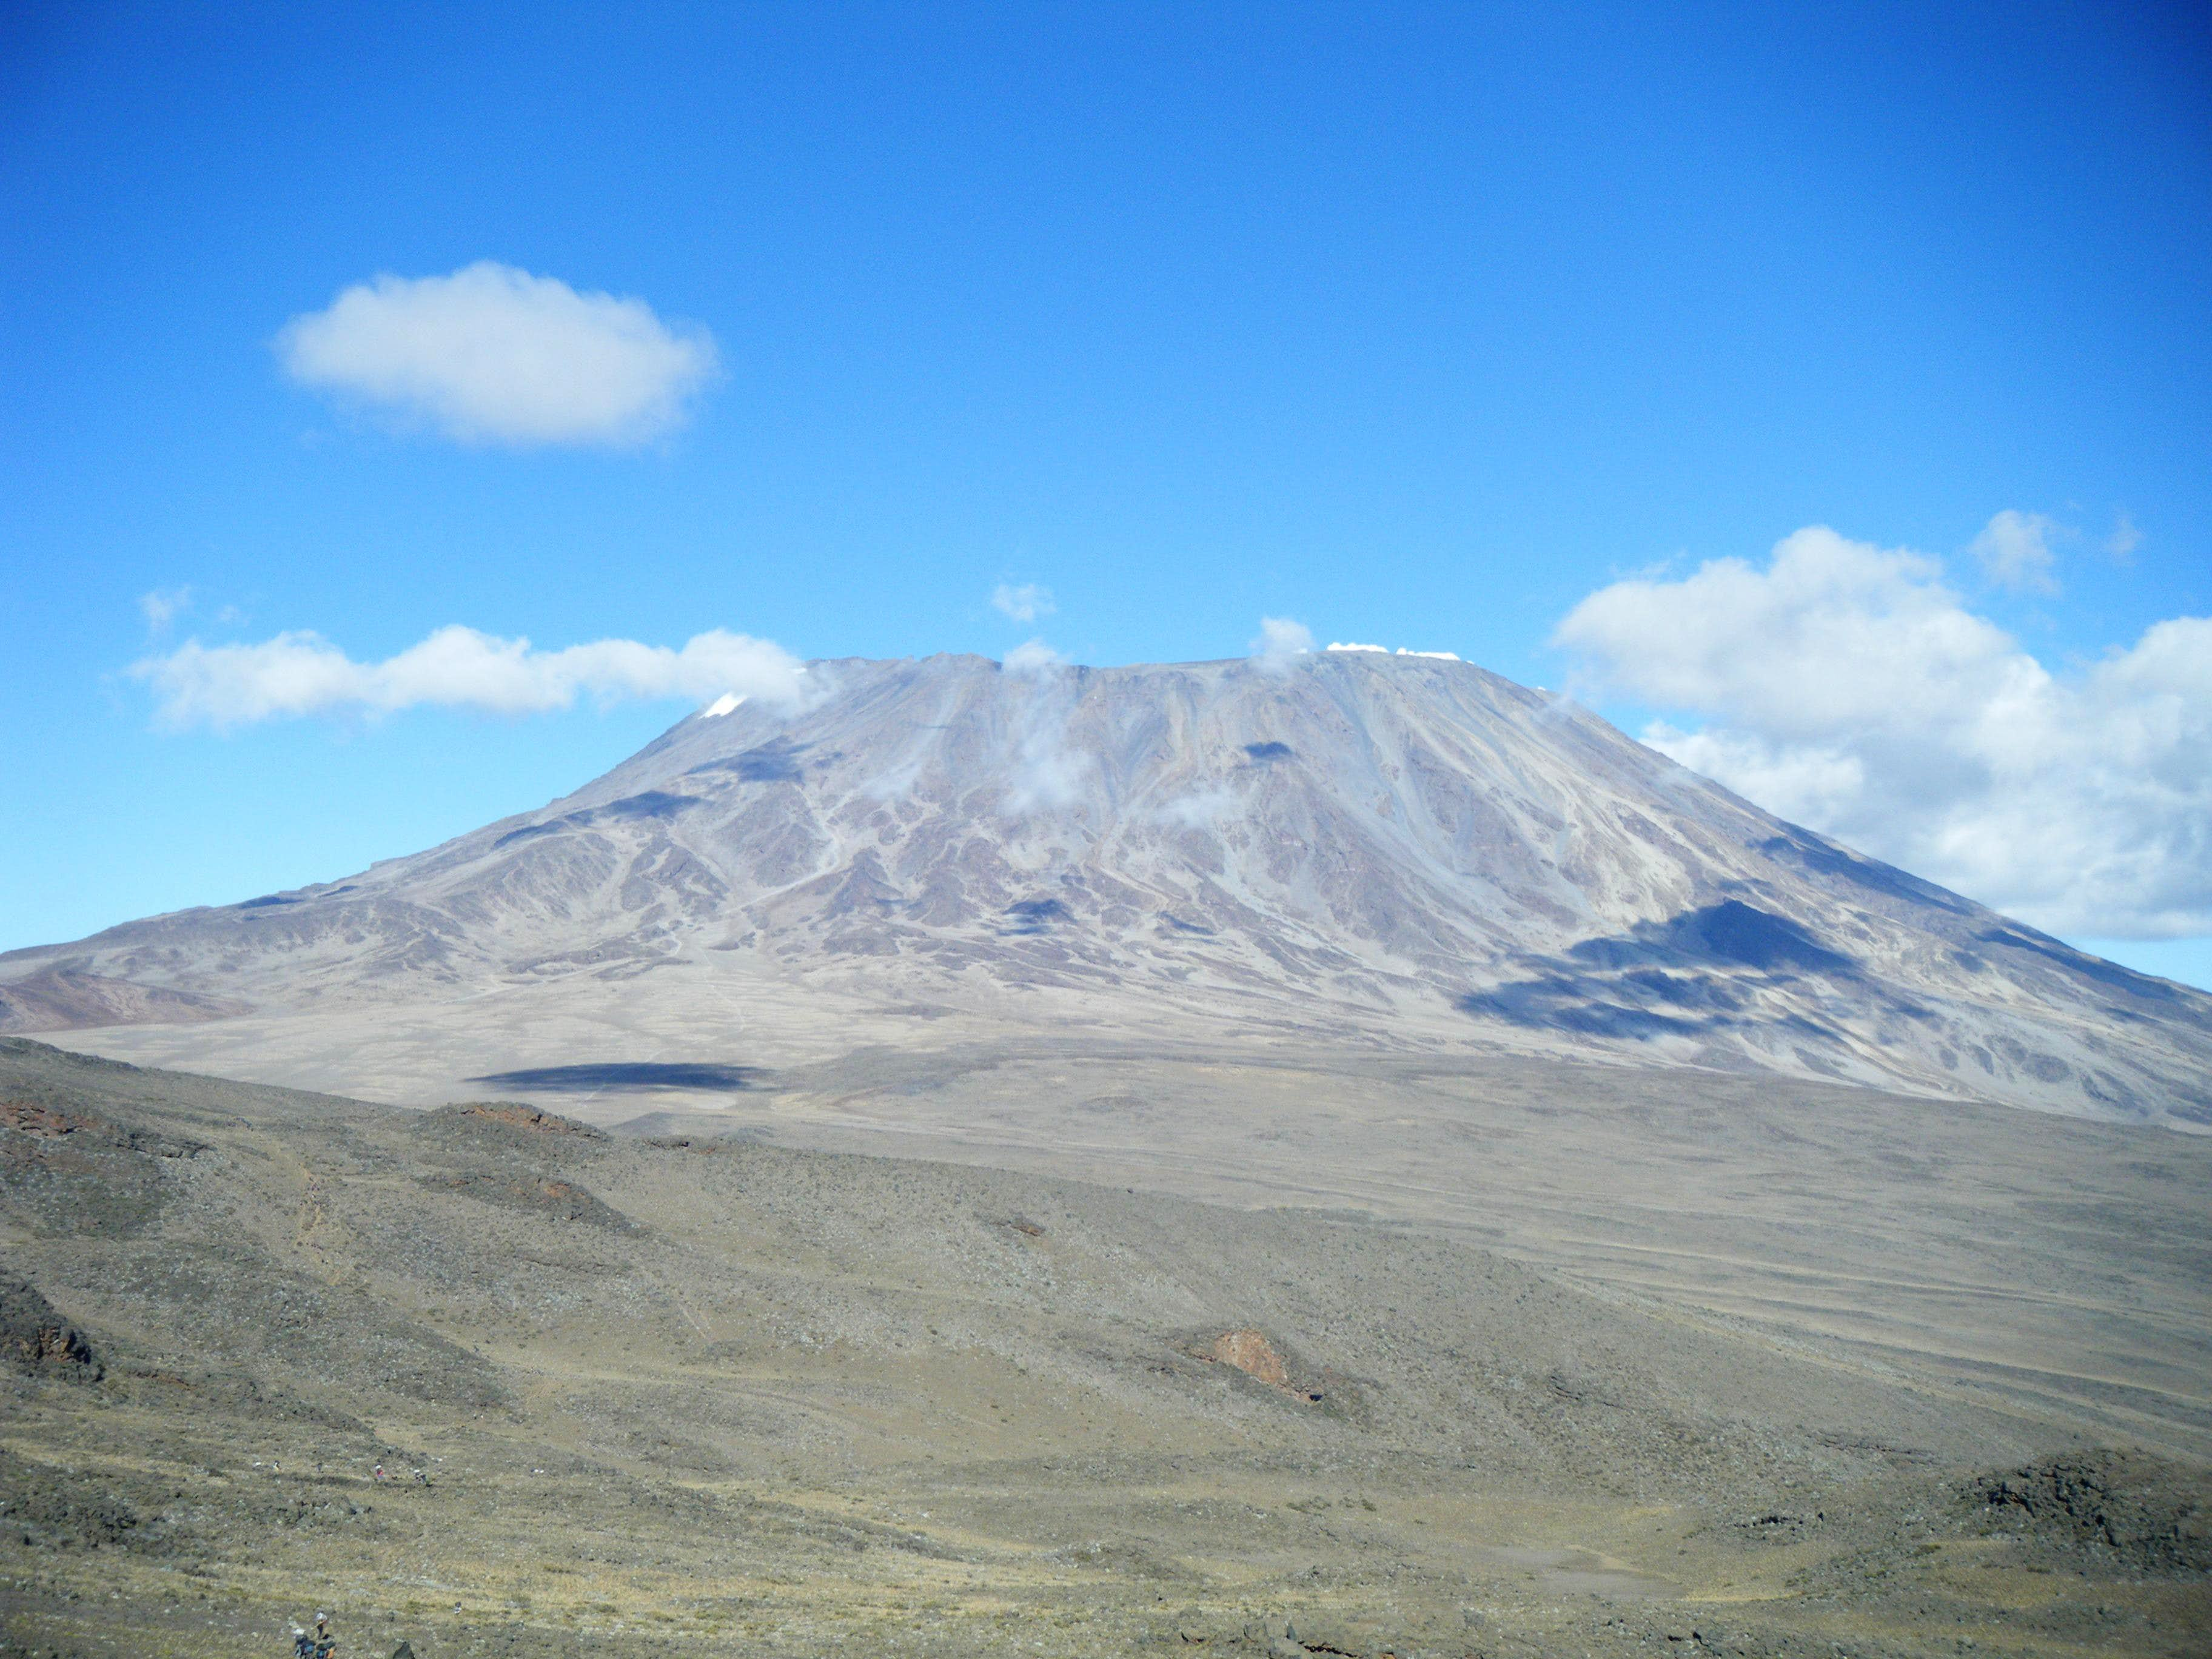 Mount Kilimanjaro via the Rongai Route